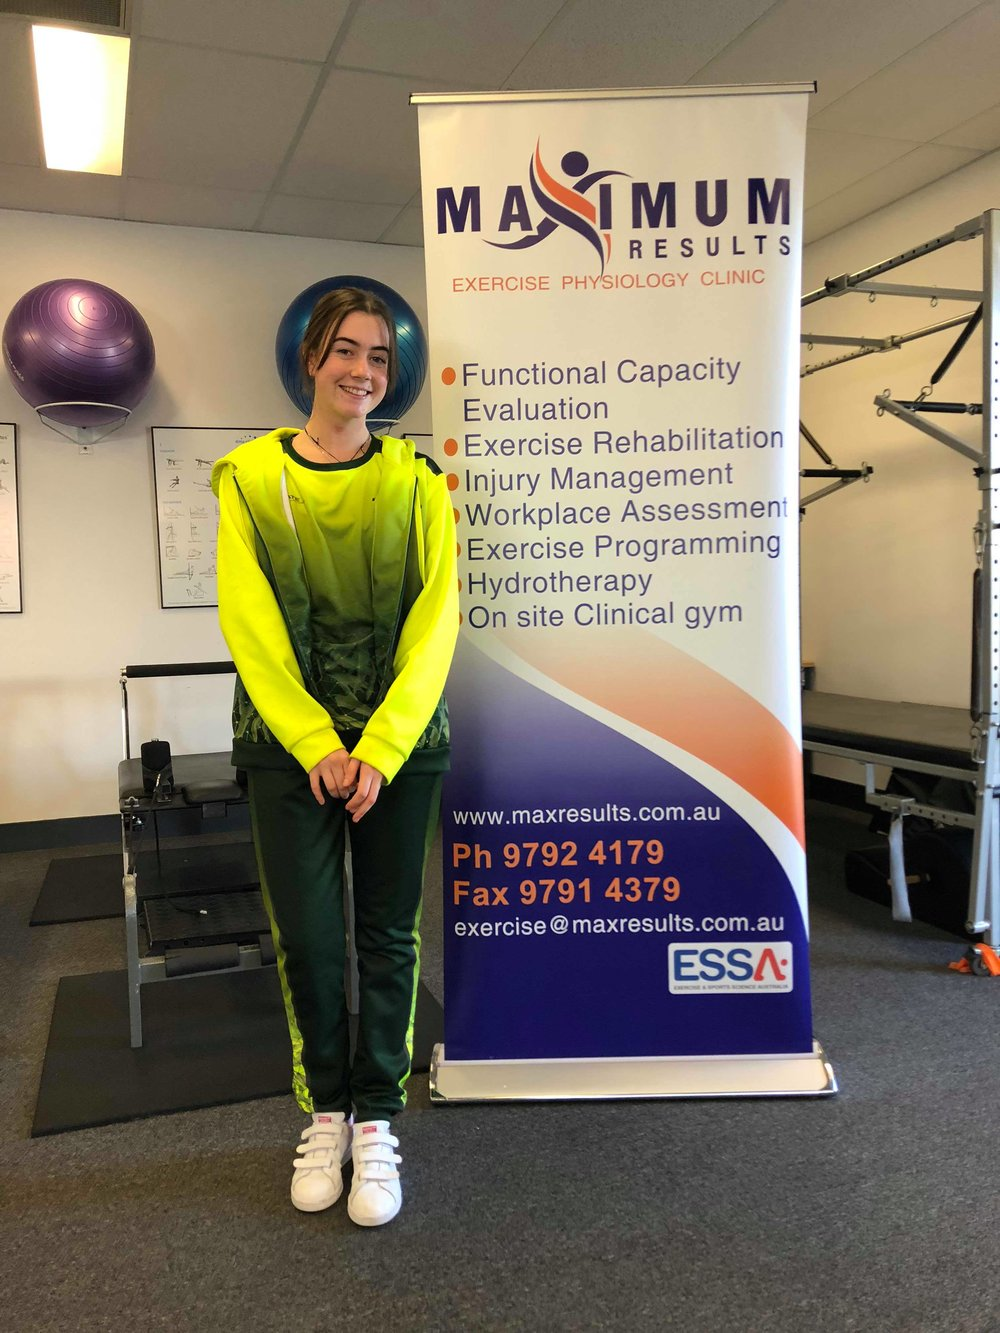 Maddison Bright - Congratulations to one of our talented athletes, Madison Bright, who came 4th overall in the Chapatim Roller Cup 2018 that took place in Matosinhos - Portugal. The competition was held over 3 days from the 3rd April until the 7th April 2018. Over 17 participants from many countries competed at this competition. Madison was one of three talented athletes that were from Bunbury. With the professional training by Director Marg Rhodes, Madison trained 3 times a week at Maximum Results. Not only was she training at our premises, Madison also trained 6 times a week at The Rink in Bunbury and 3 times a week completing off skate.